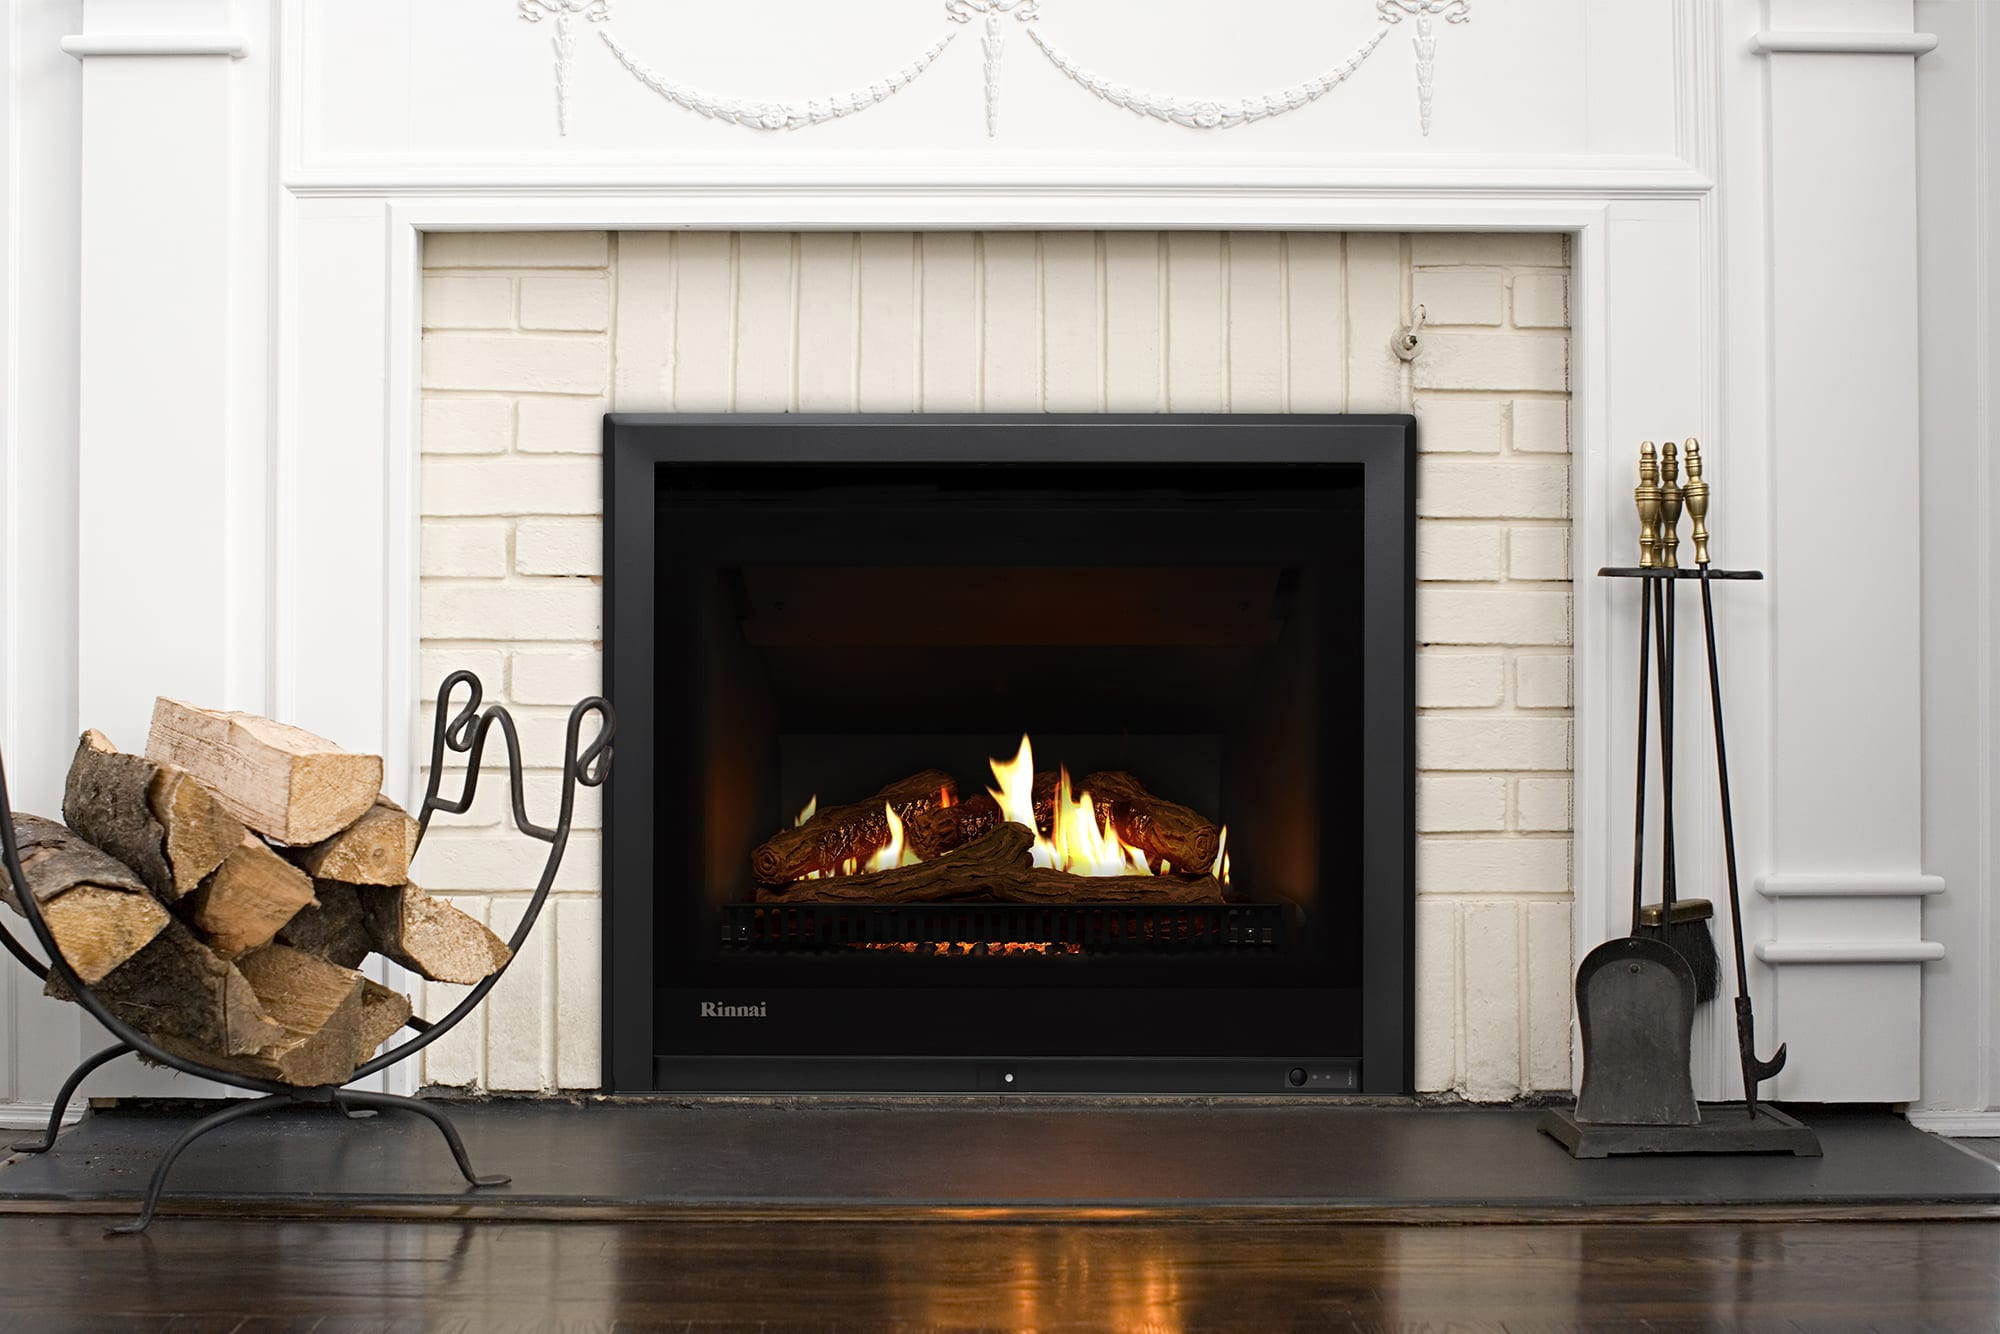 fireplaces fuel dual free cherry ventless p gas in emberglow fireplace vent convertible